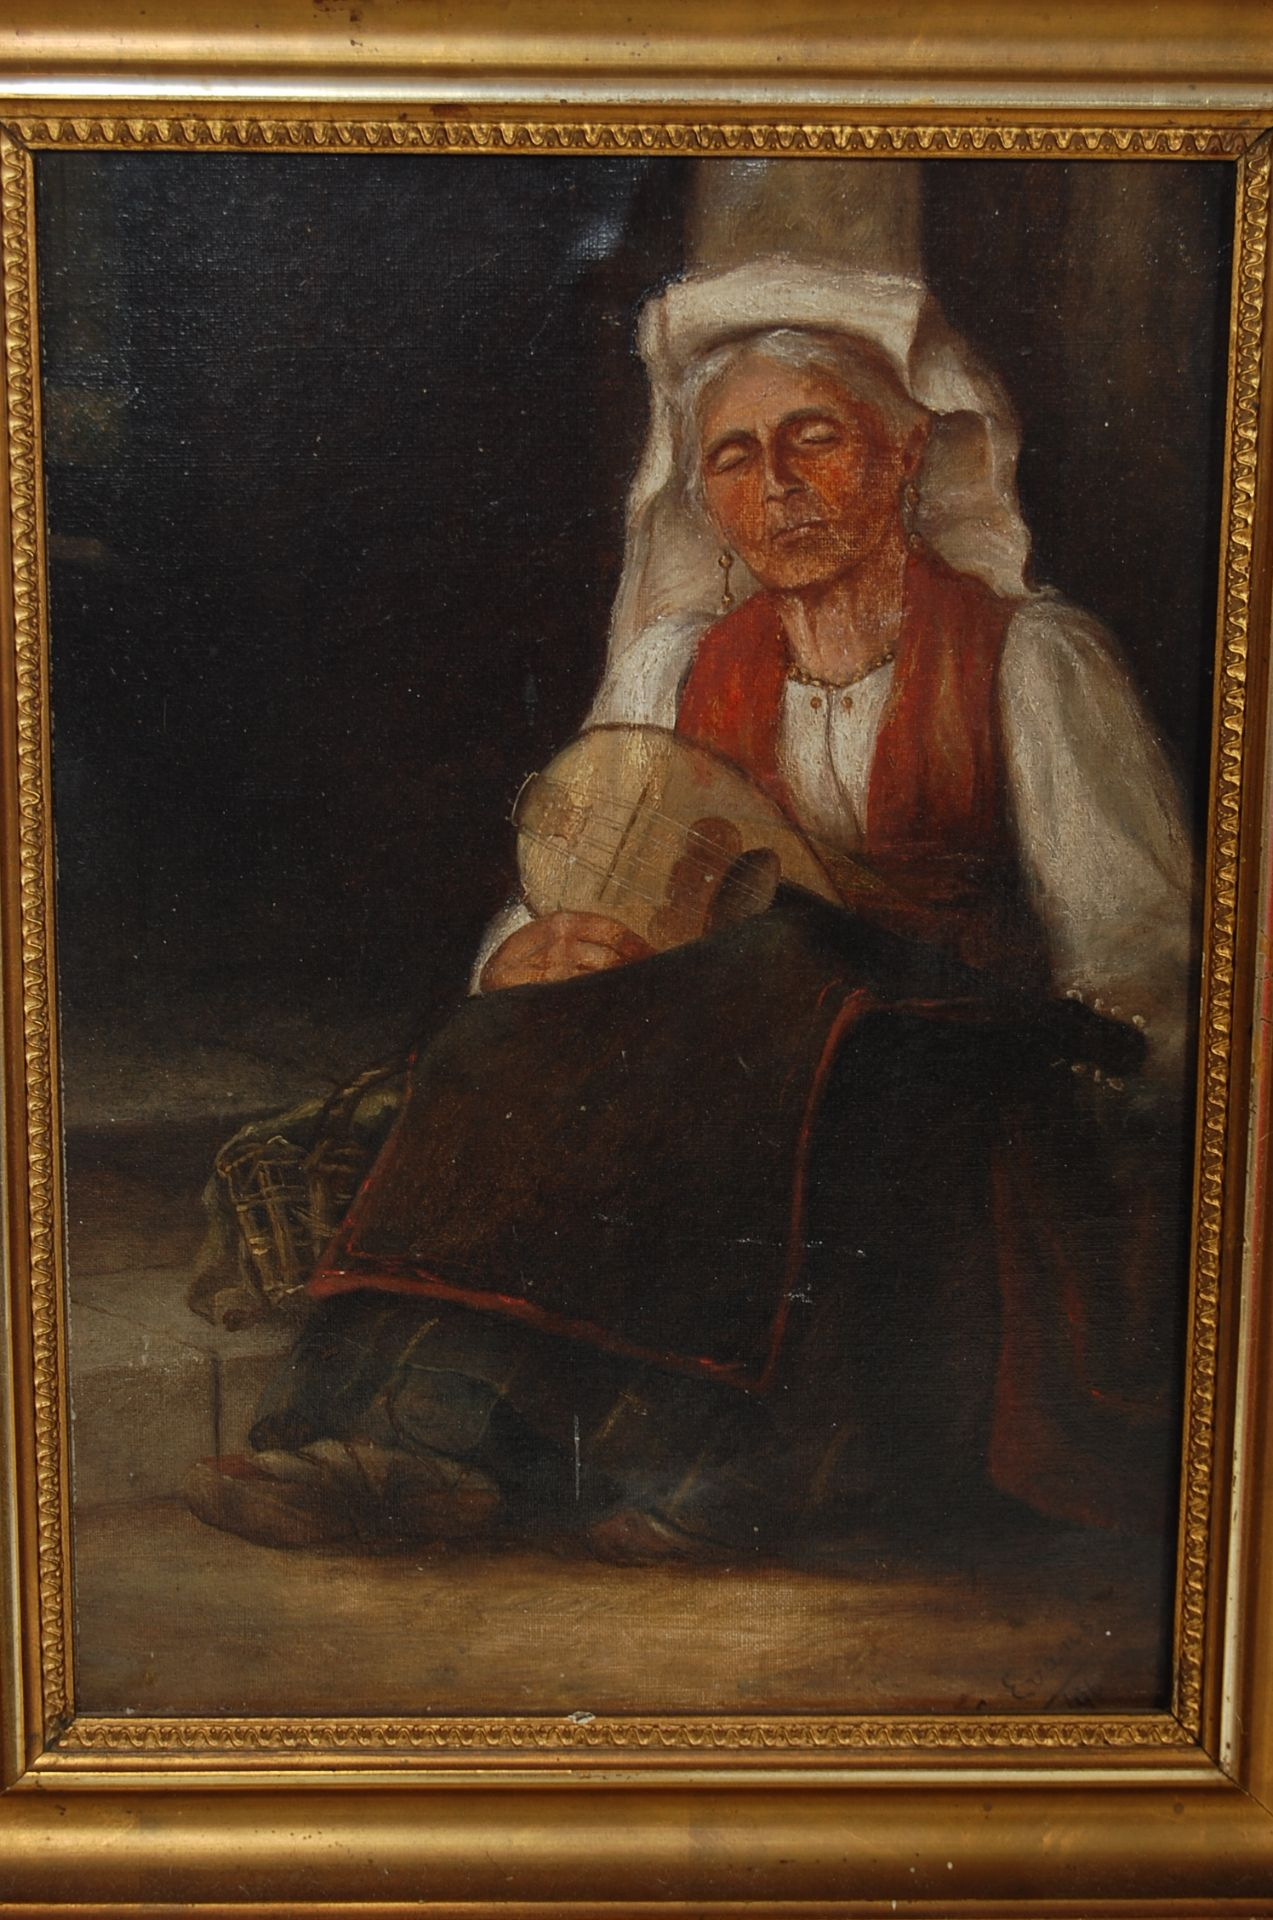 19TH CENTURY OIL OF A SLEEPING MANDOLIN PLAYER BY C EVANS - Image 2 of 5